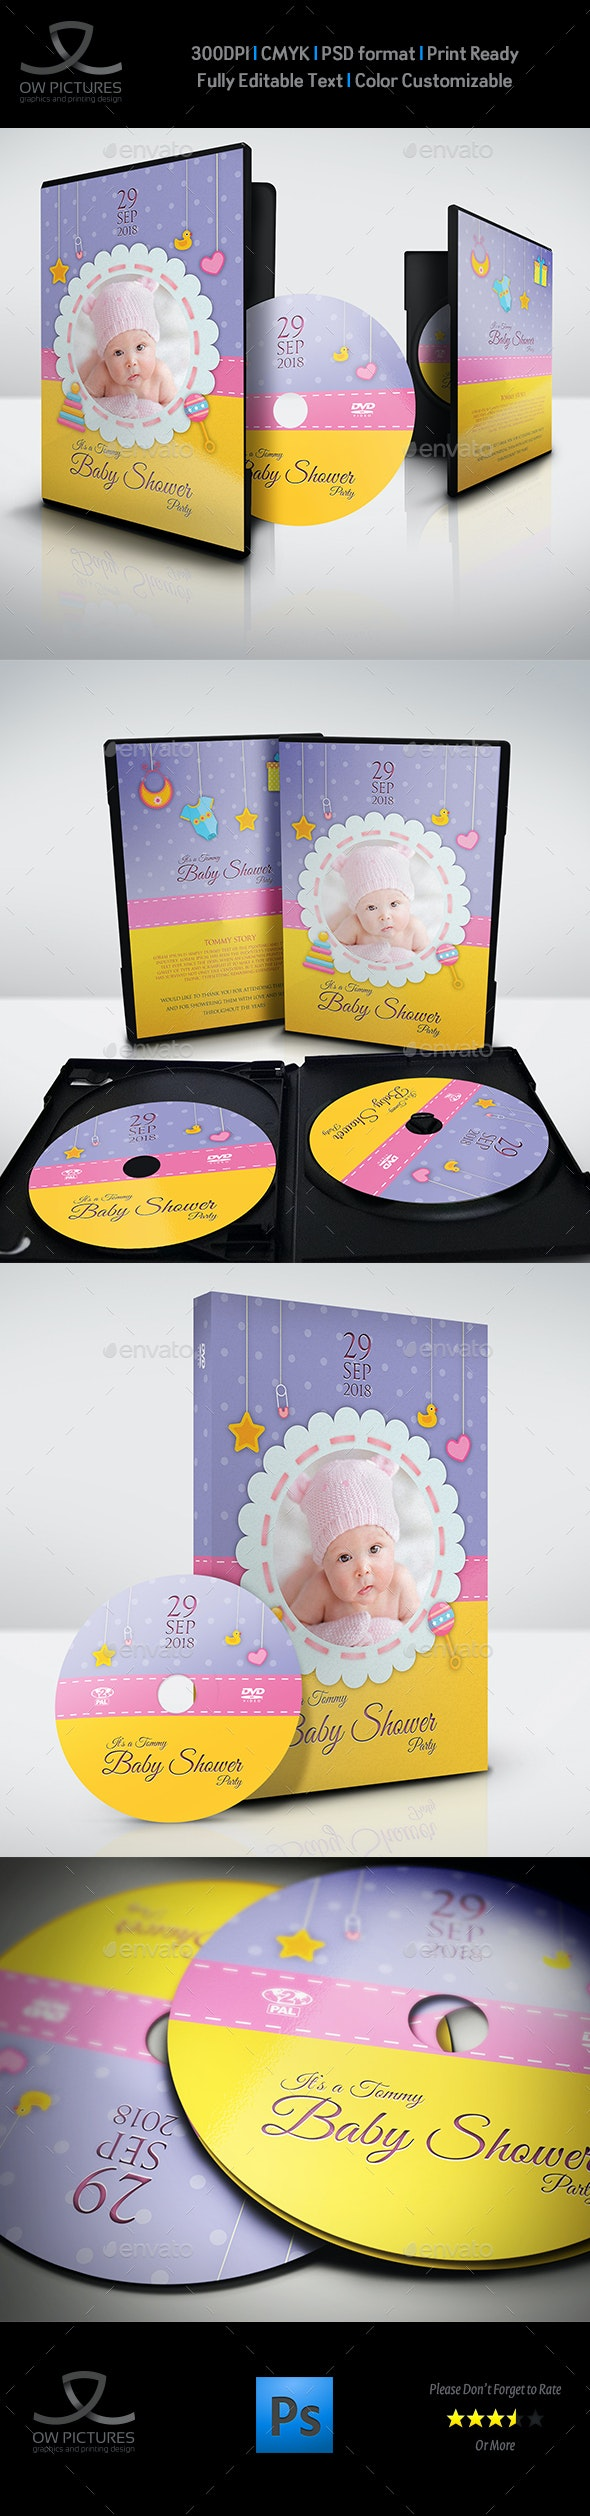 Baby Shower DVD Template Vol.10 - CD & DVD Artwork Print Templates